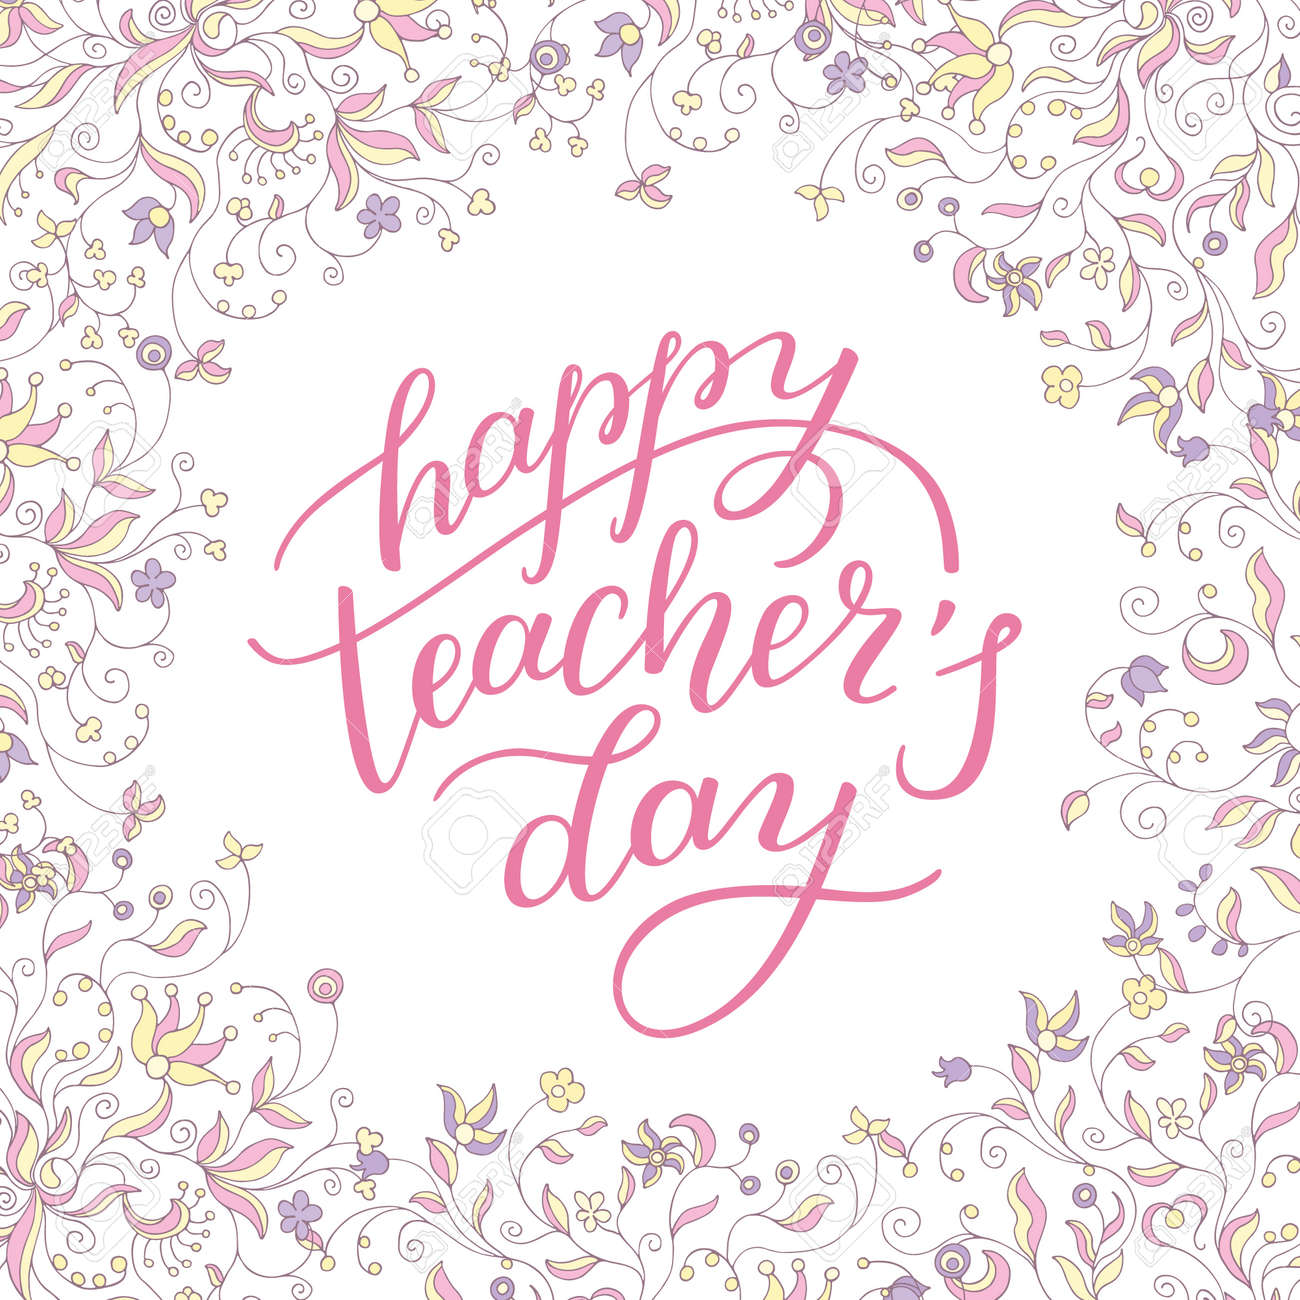 Happy Teachers Day Hand Lettering With Flower Frame Template For